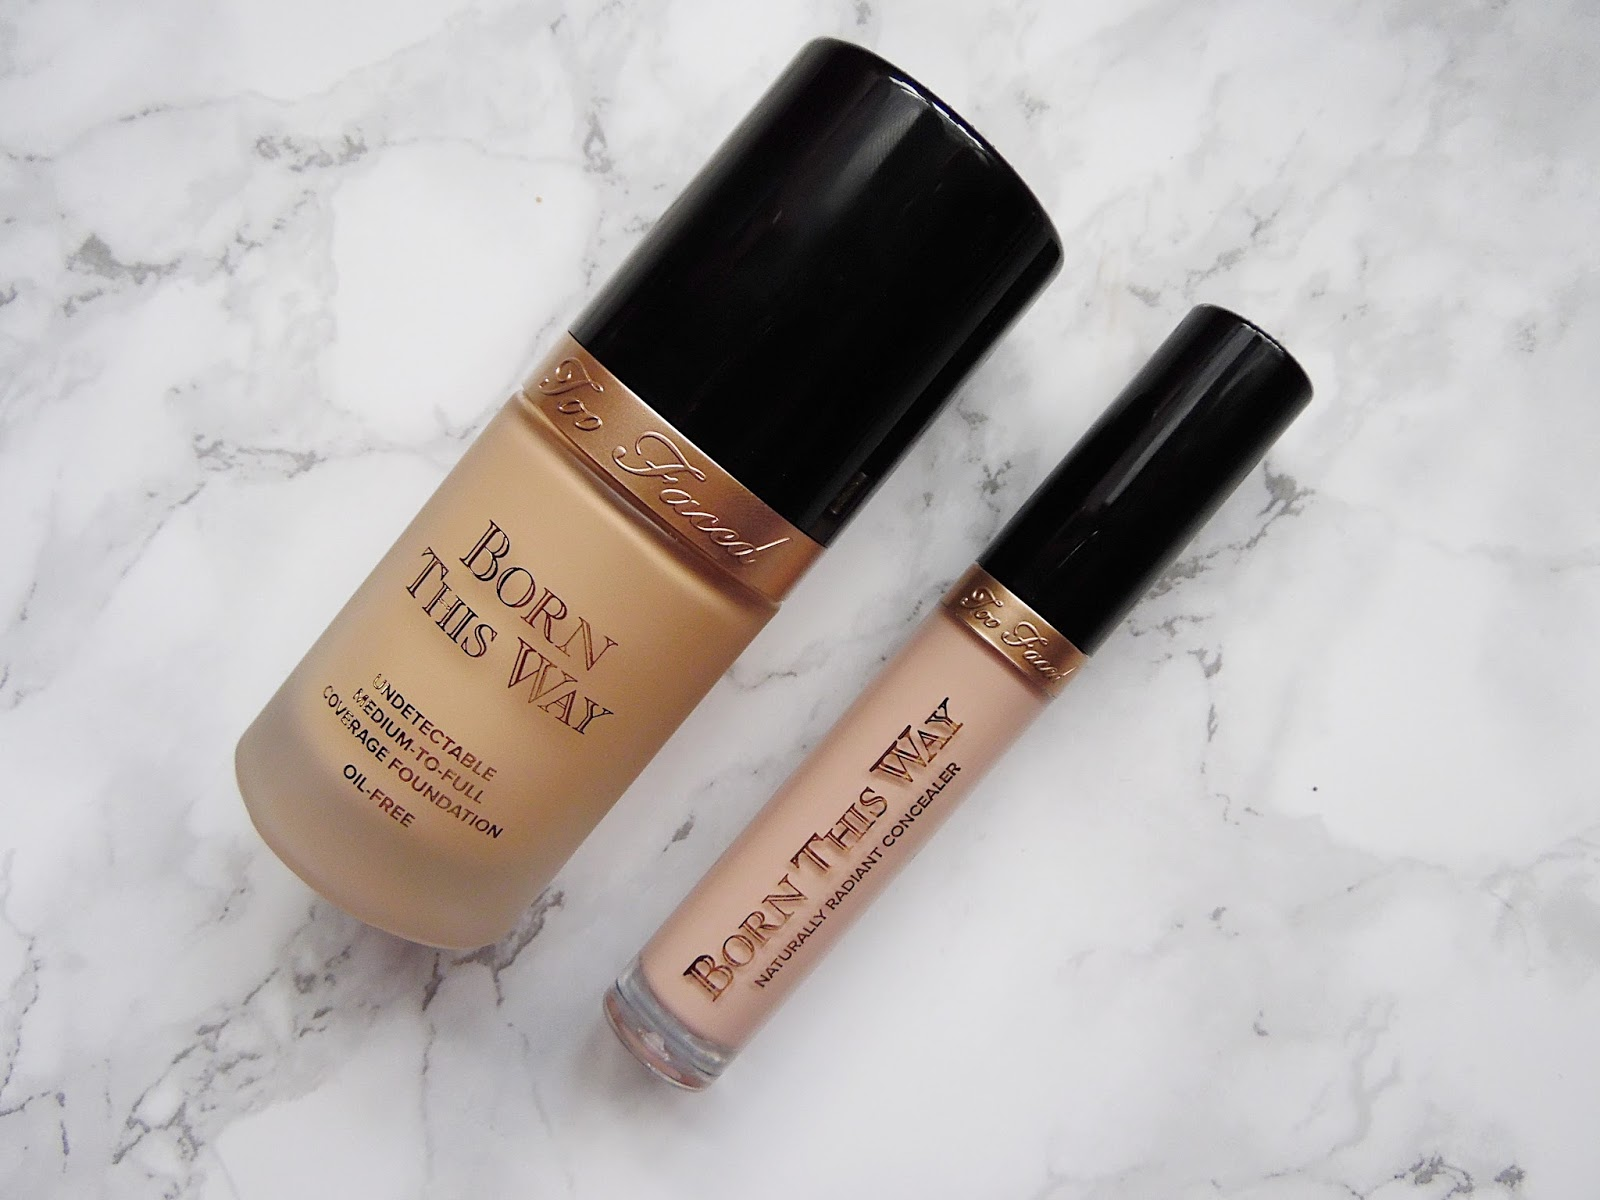 Too Faced Born This Way Foundation & Concealer